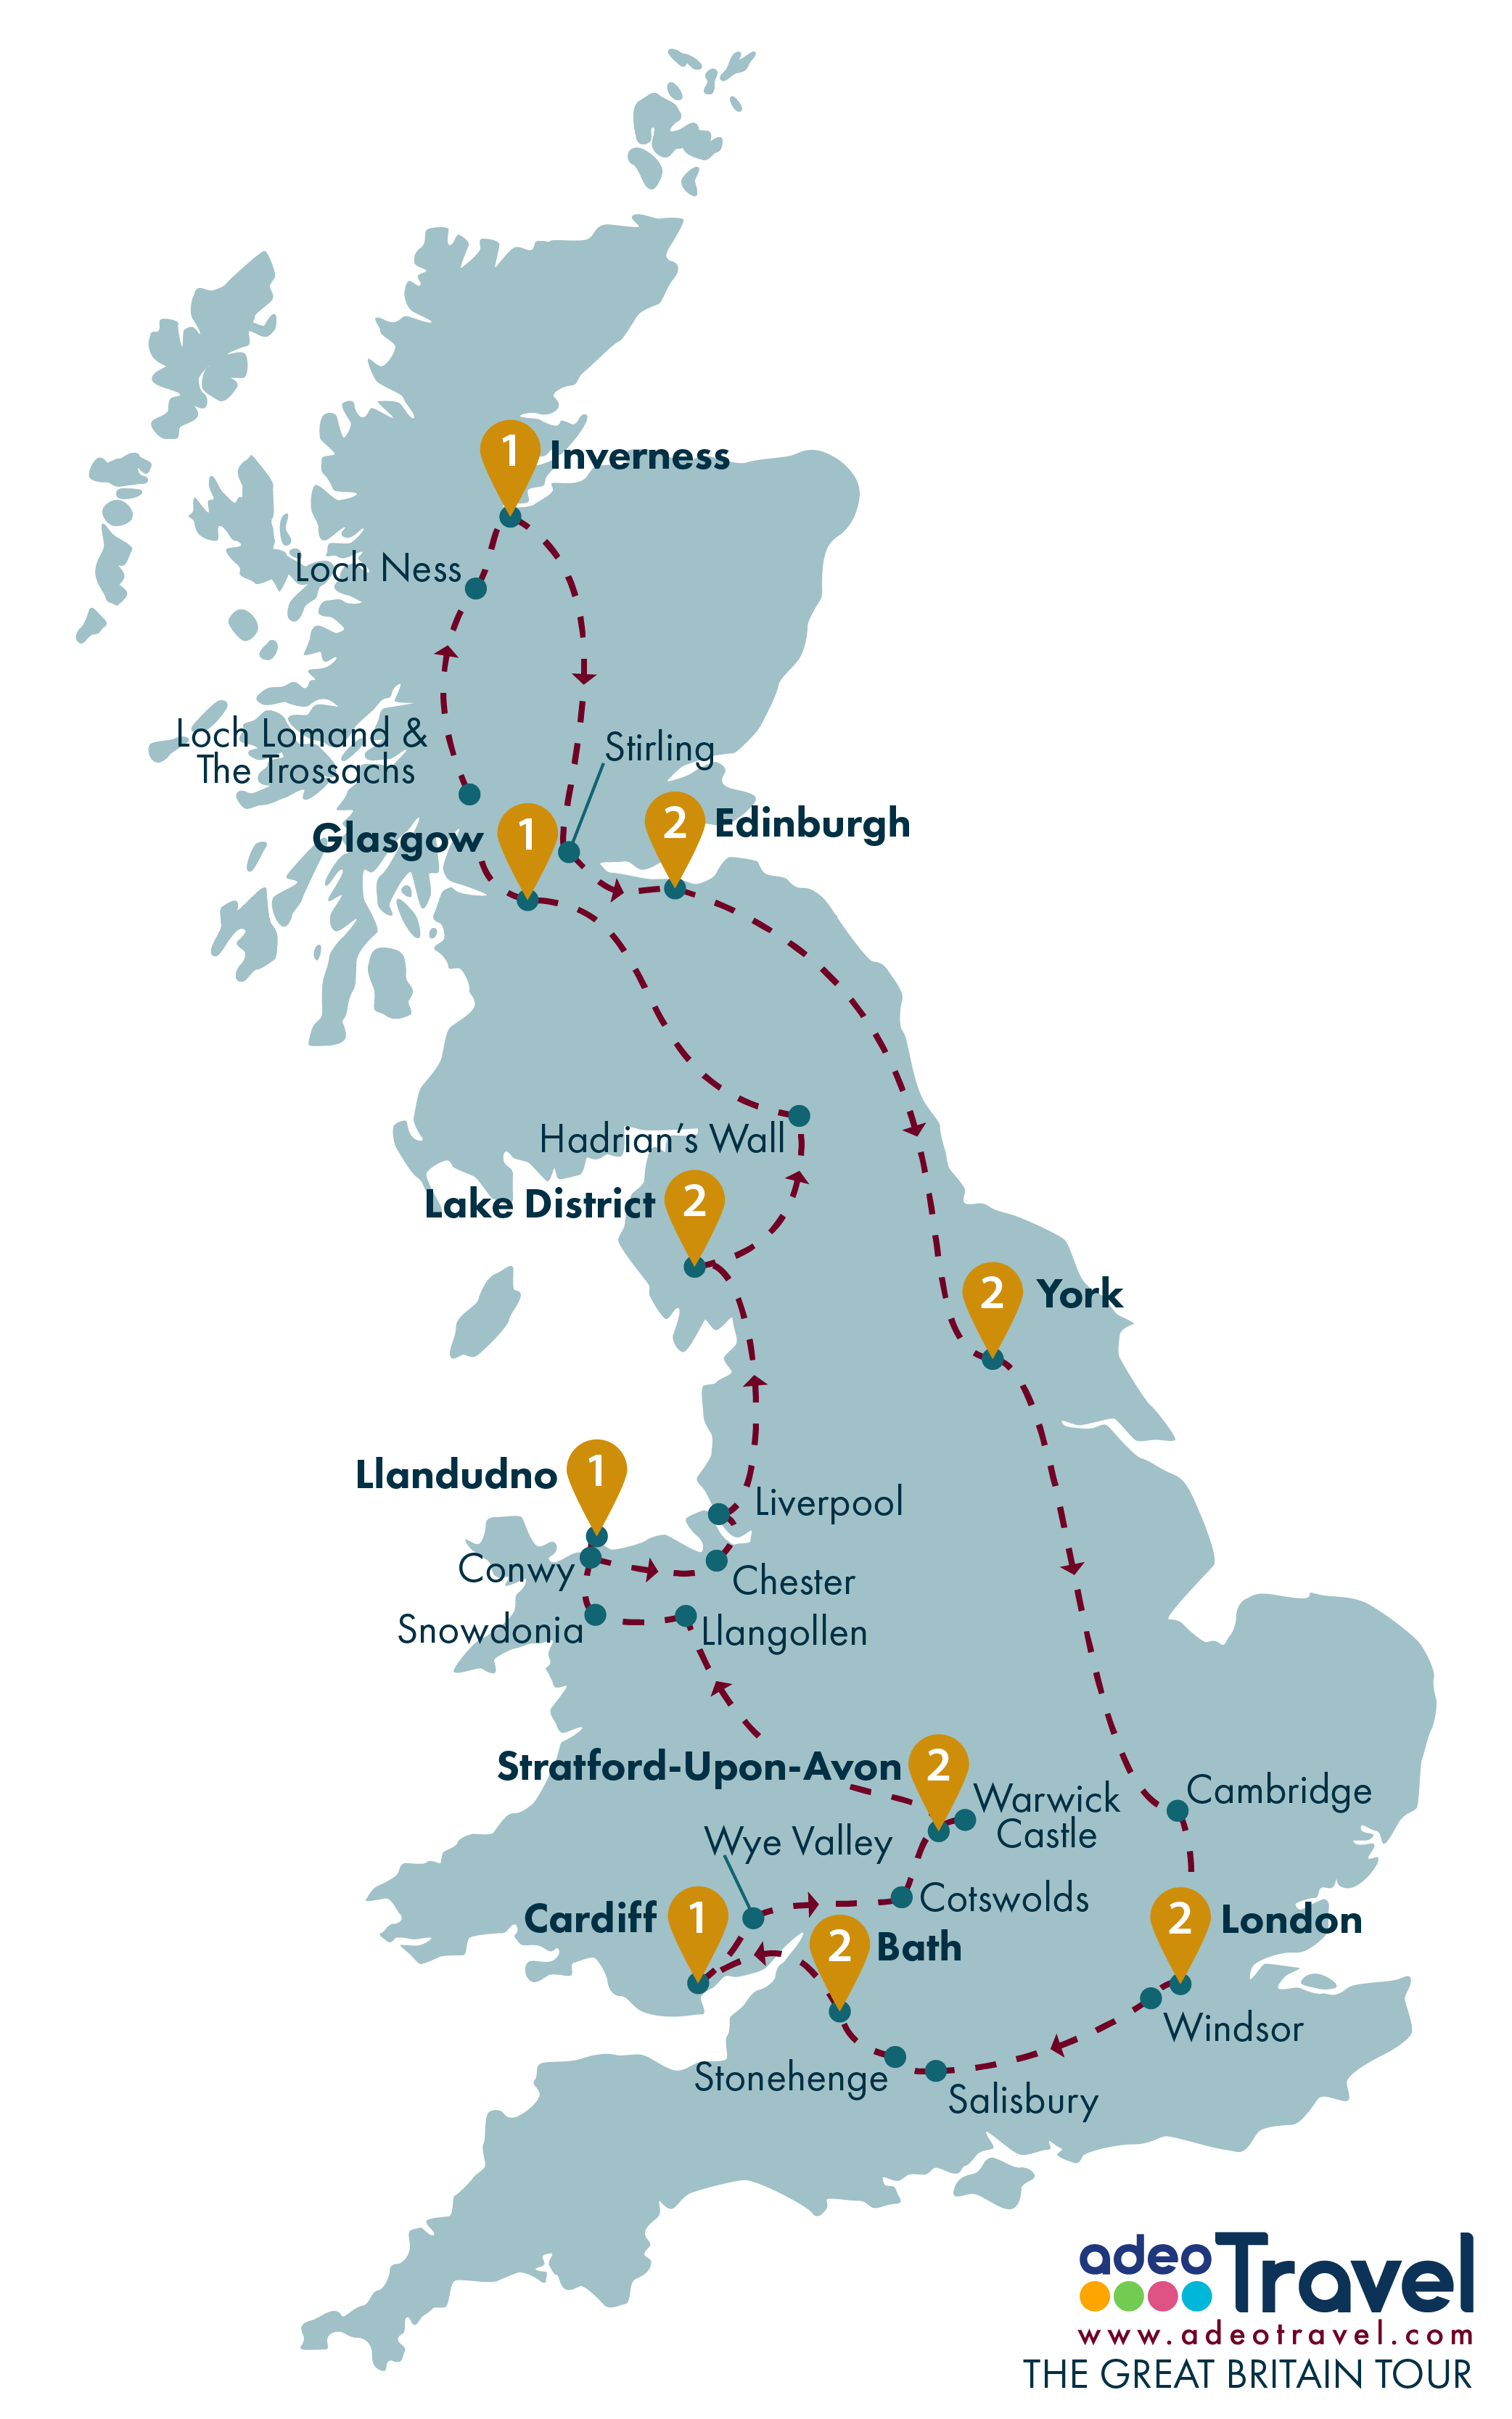 London Great Britain Map.The Great Britain Tour A Great Britain Driving Tour Of England